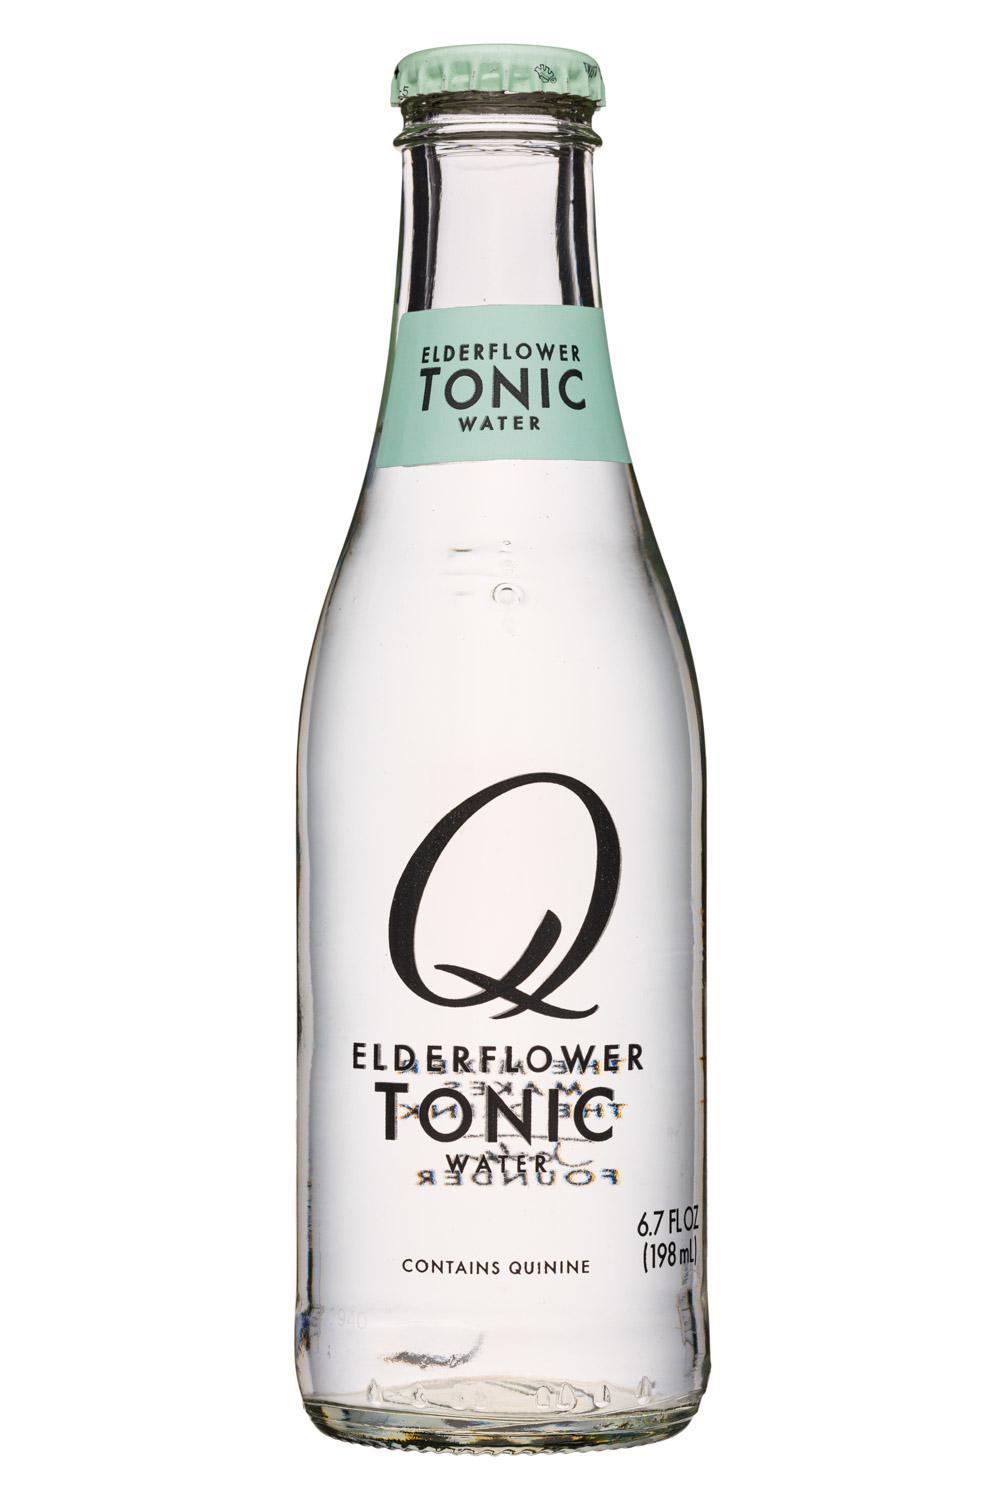 Elderflower Tonic 2019